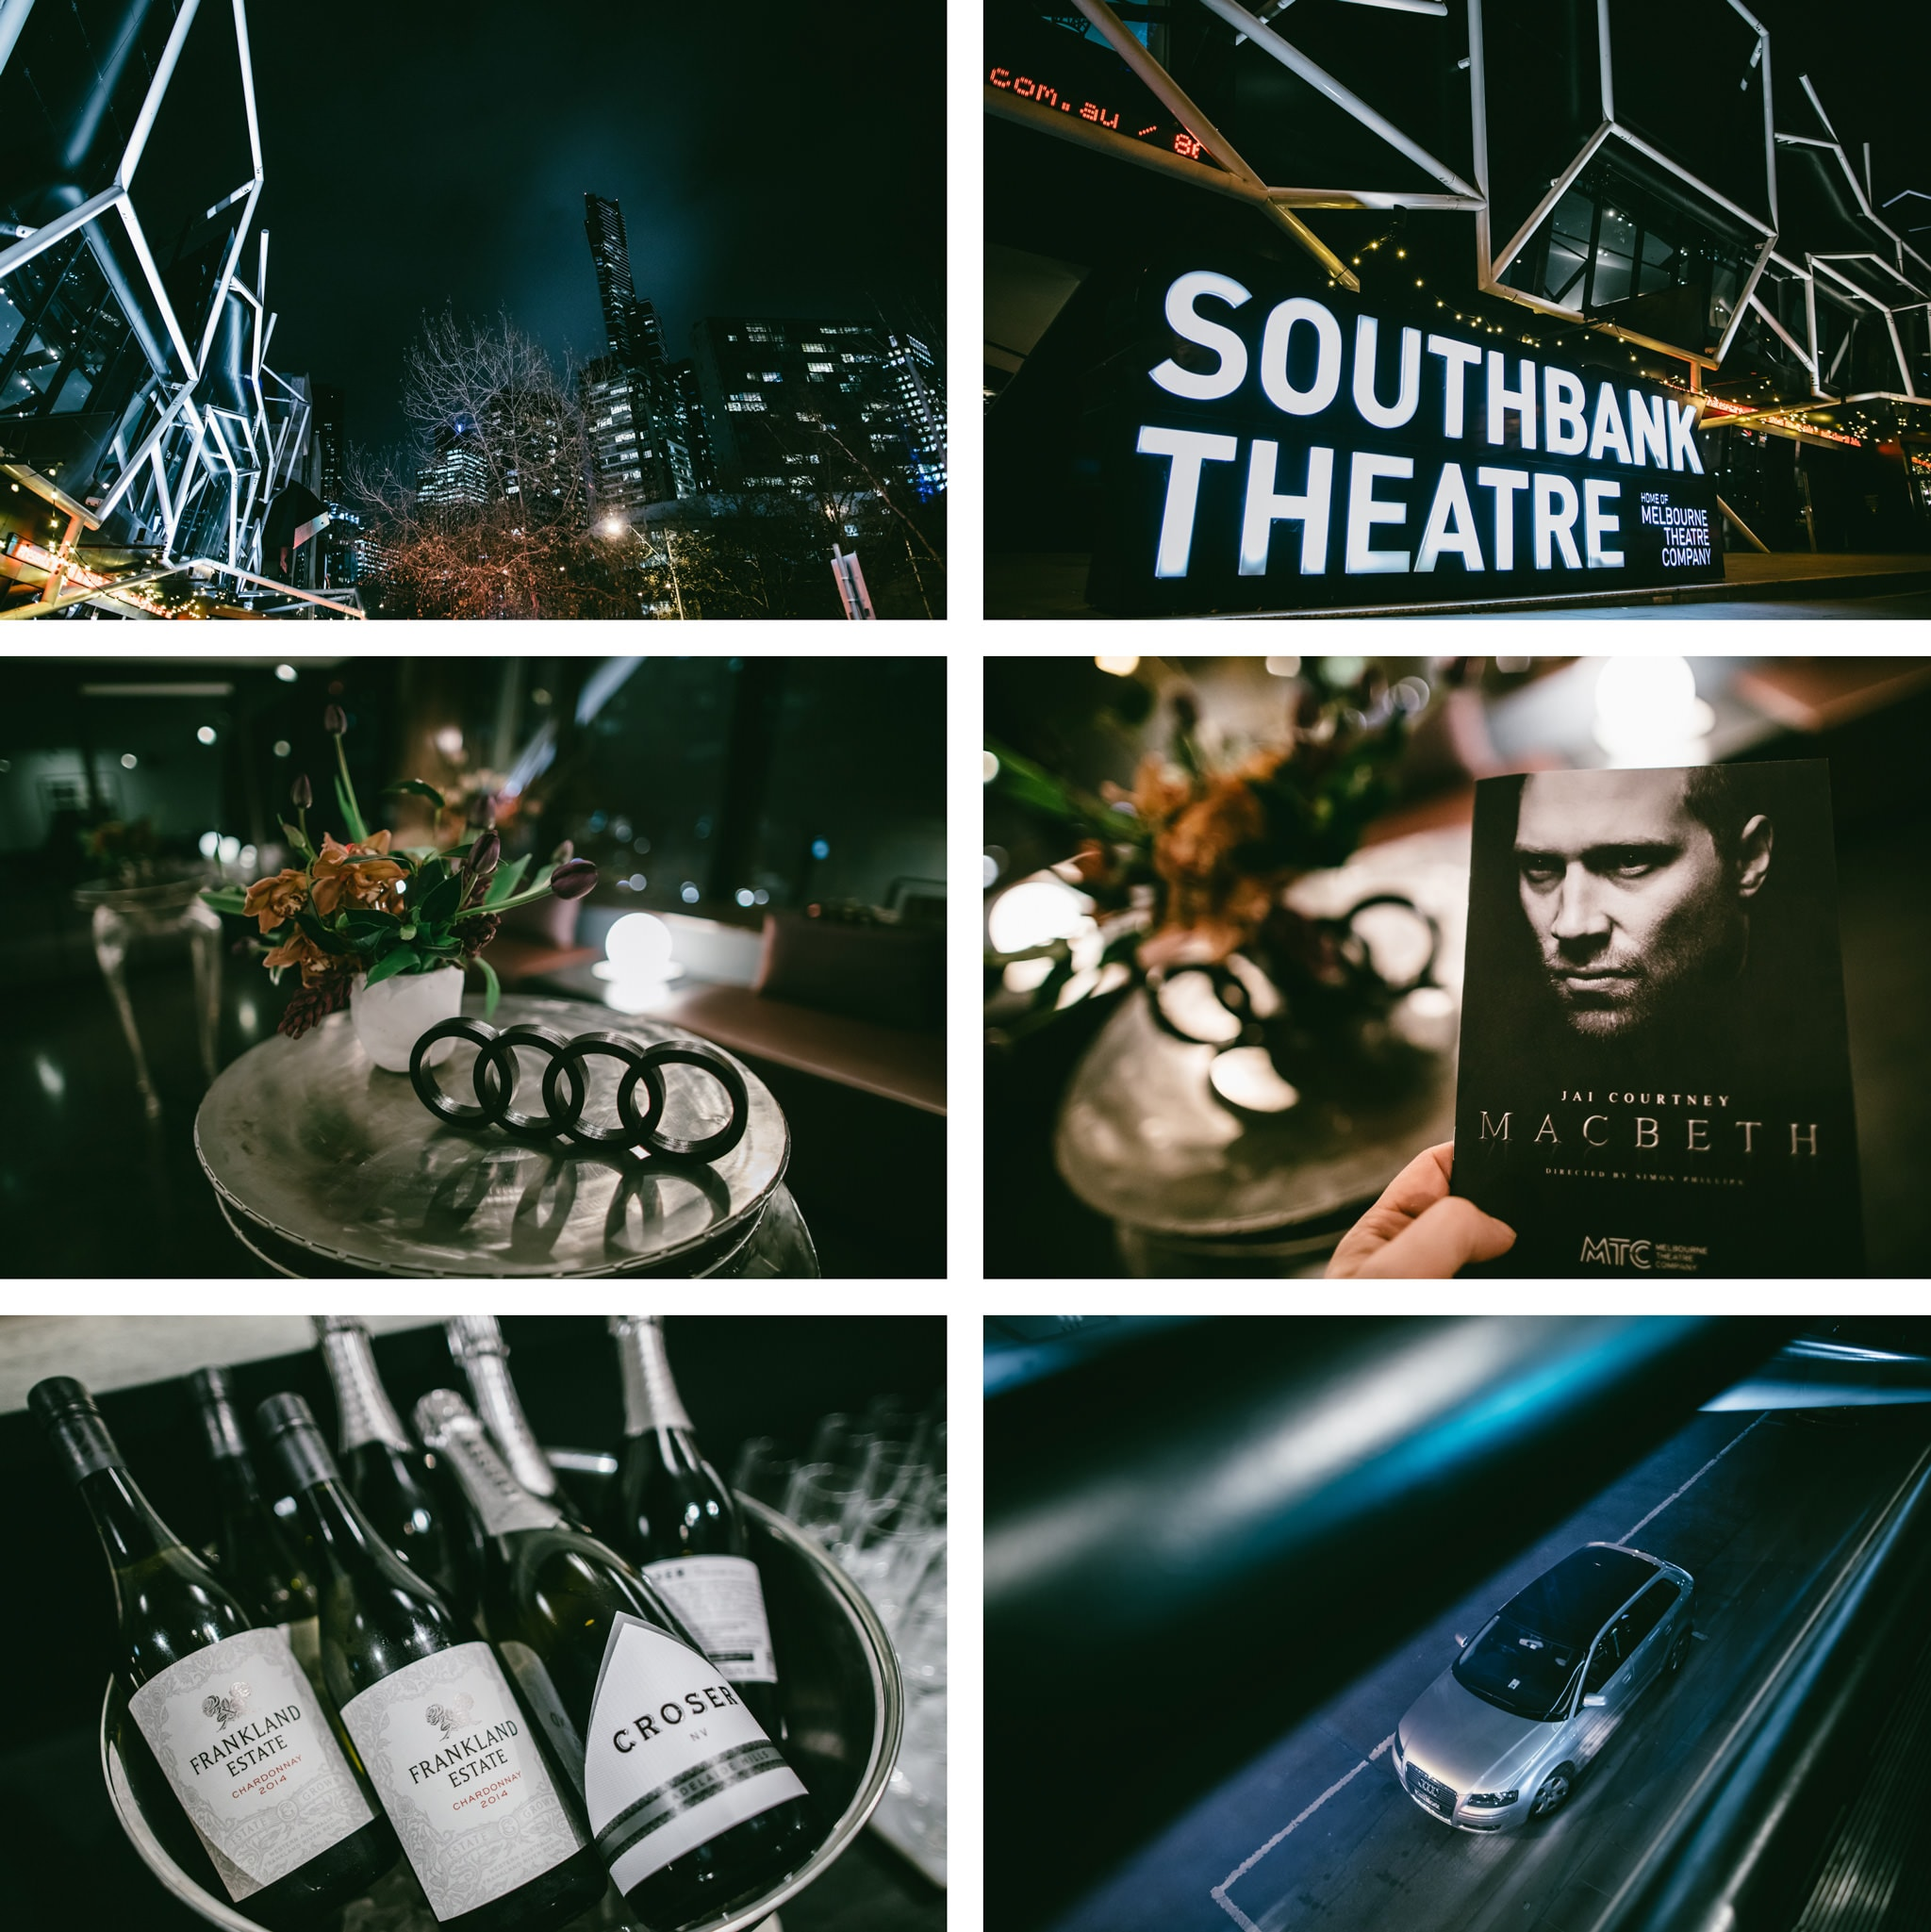 Event Photos in the Melbourne CBD - Outdoor and indoor event photograph in Melbourne - Southbank Theatre